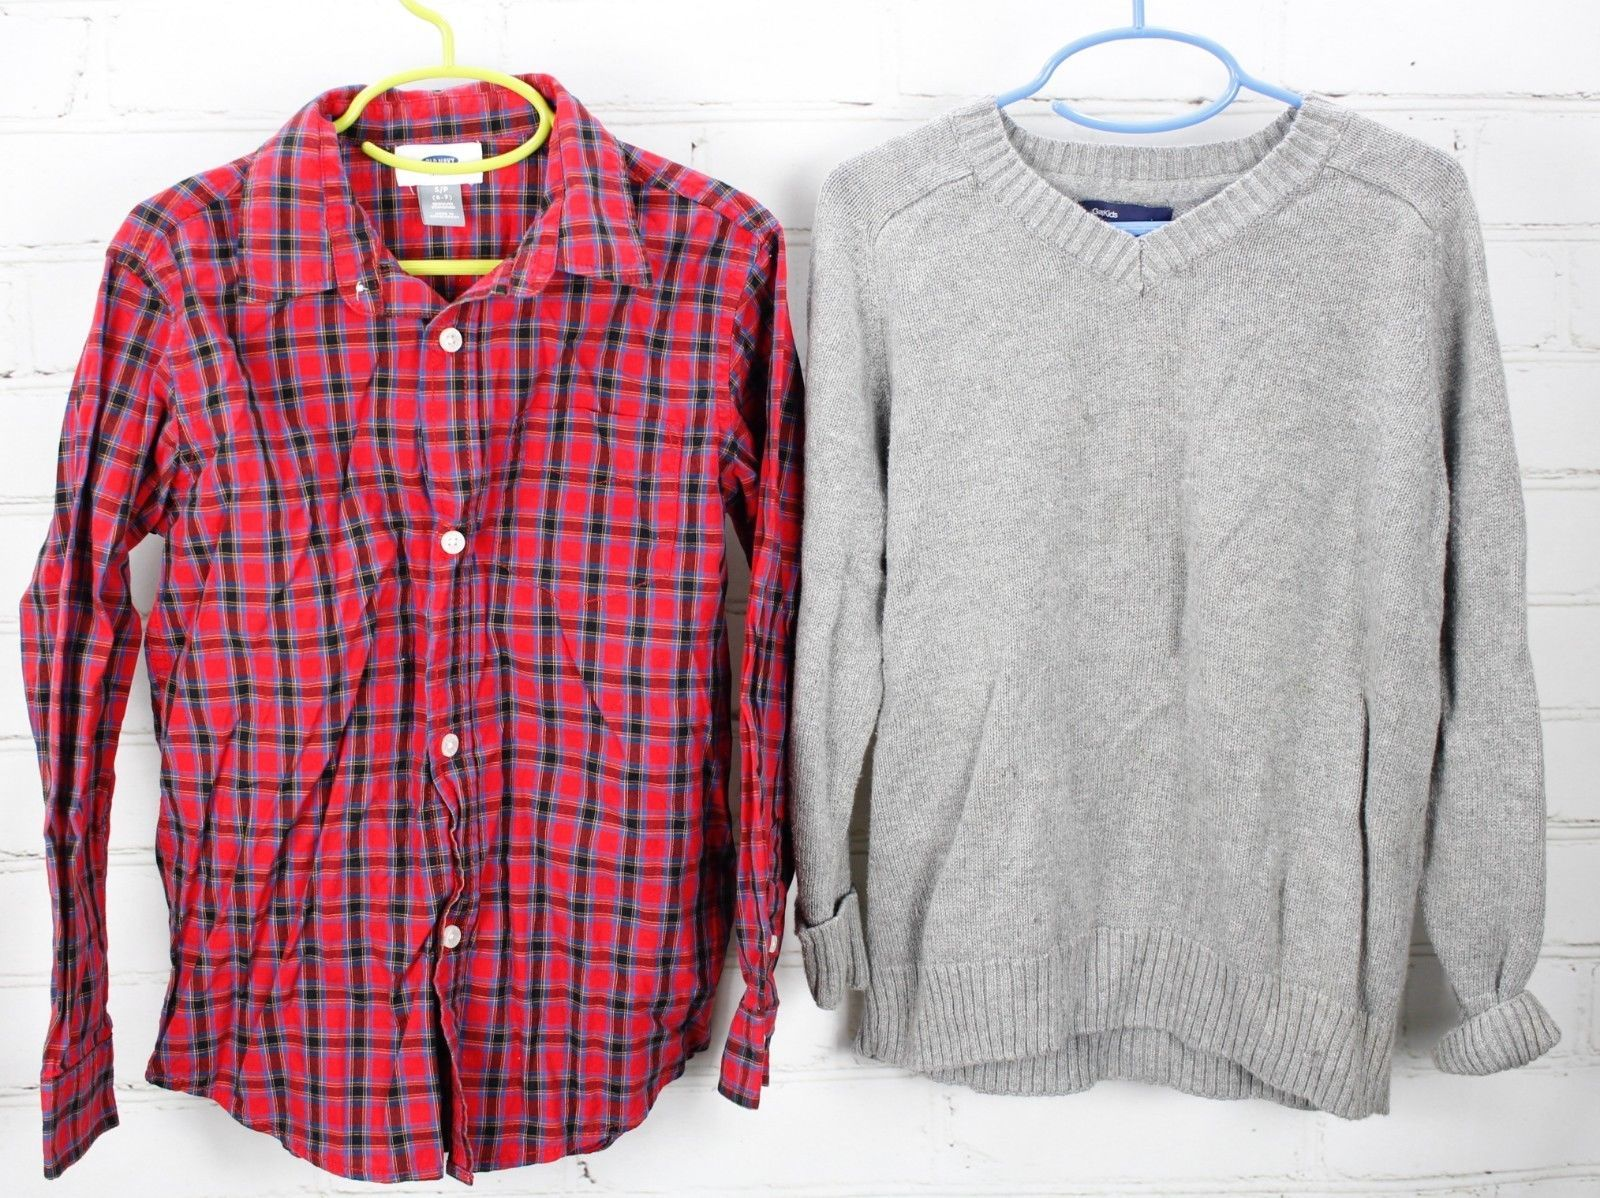 Old Navy Plaid Button Down Shirt + Gap Kids Sweater Boys Size S 6-7 Holiday Set